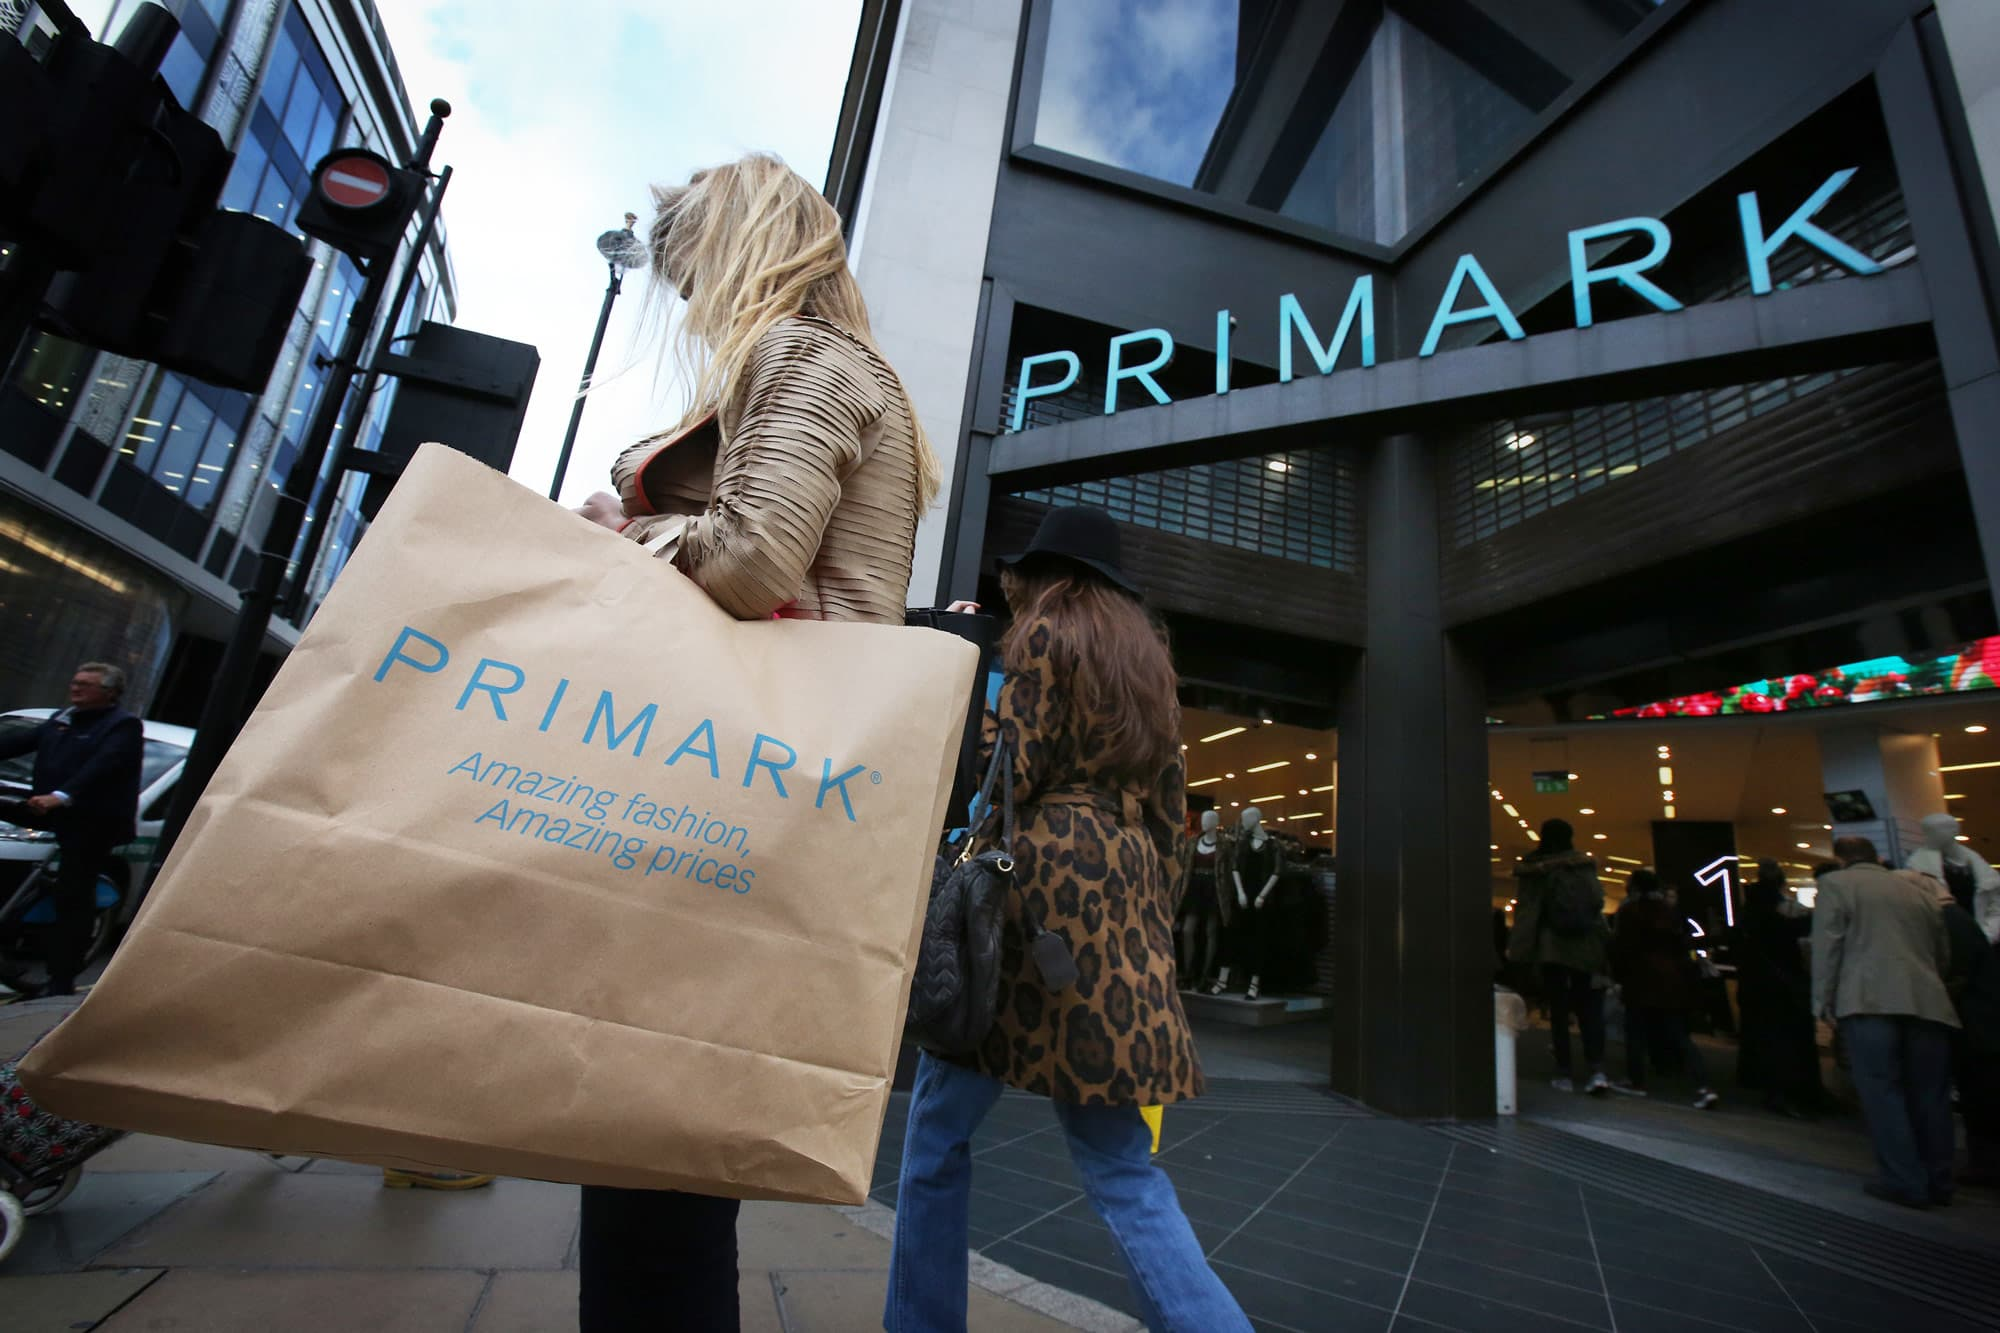 Primark is now the fastest-growing retailer in the US, according to research from Kantar Consulting. It will open its next store in Florida in 2019 images